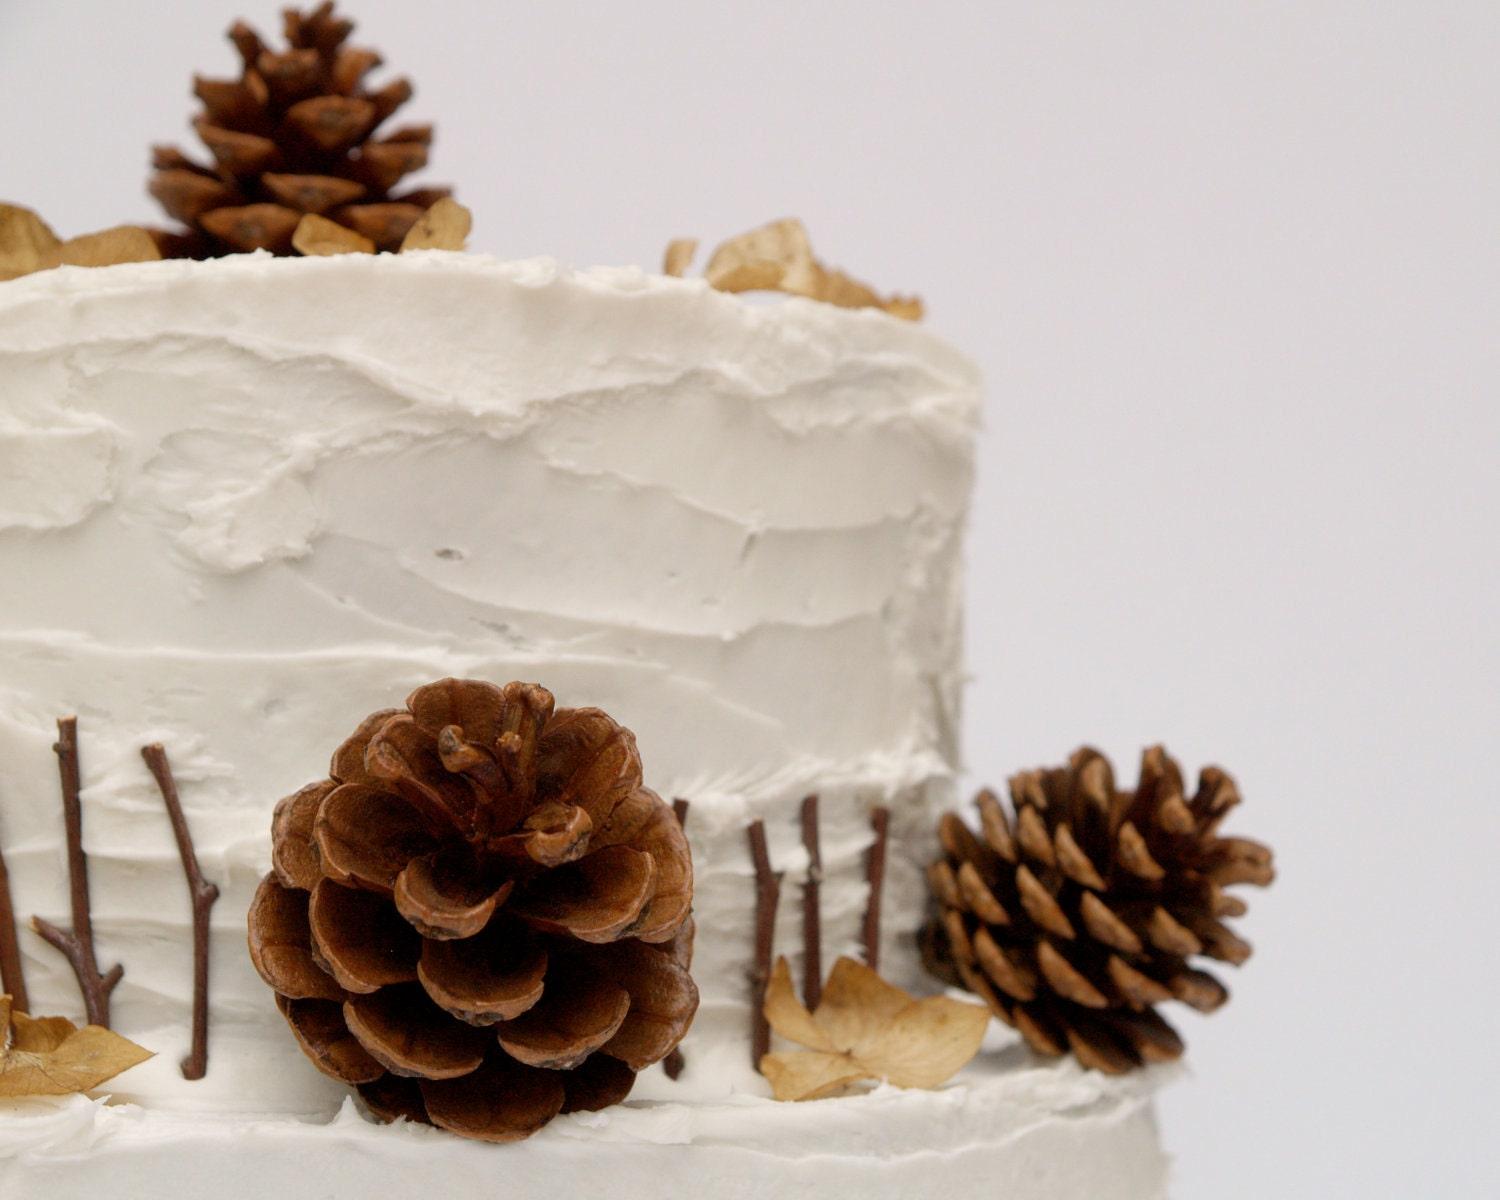 How To Make Cake Decoration Cone : Pine Cone Cake Topper Decorations for your by ...